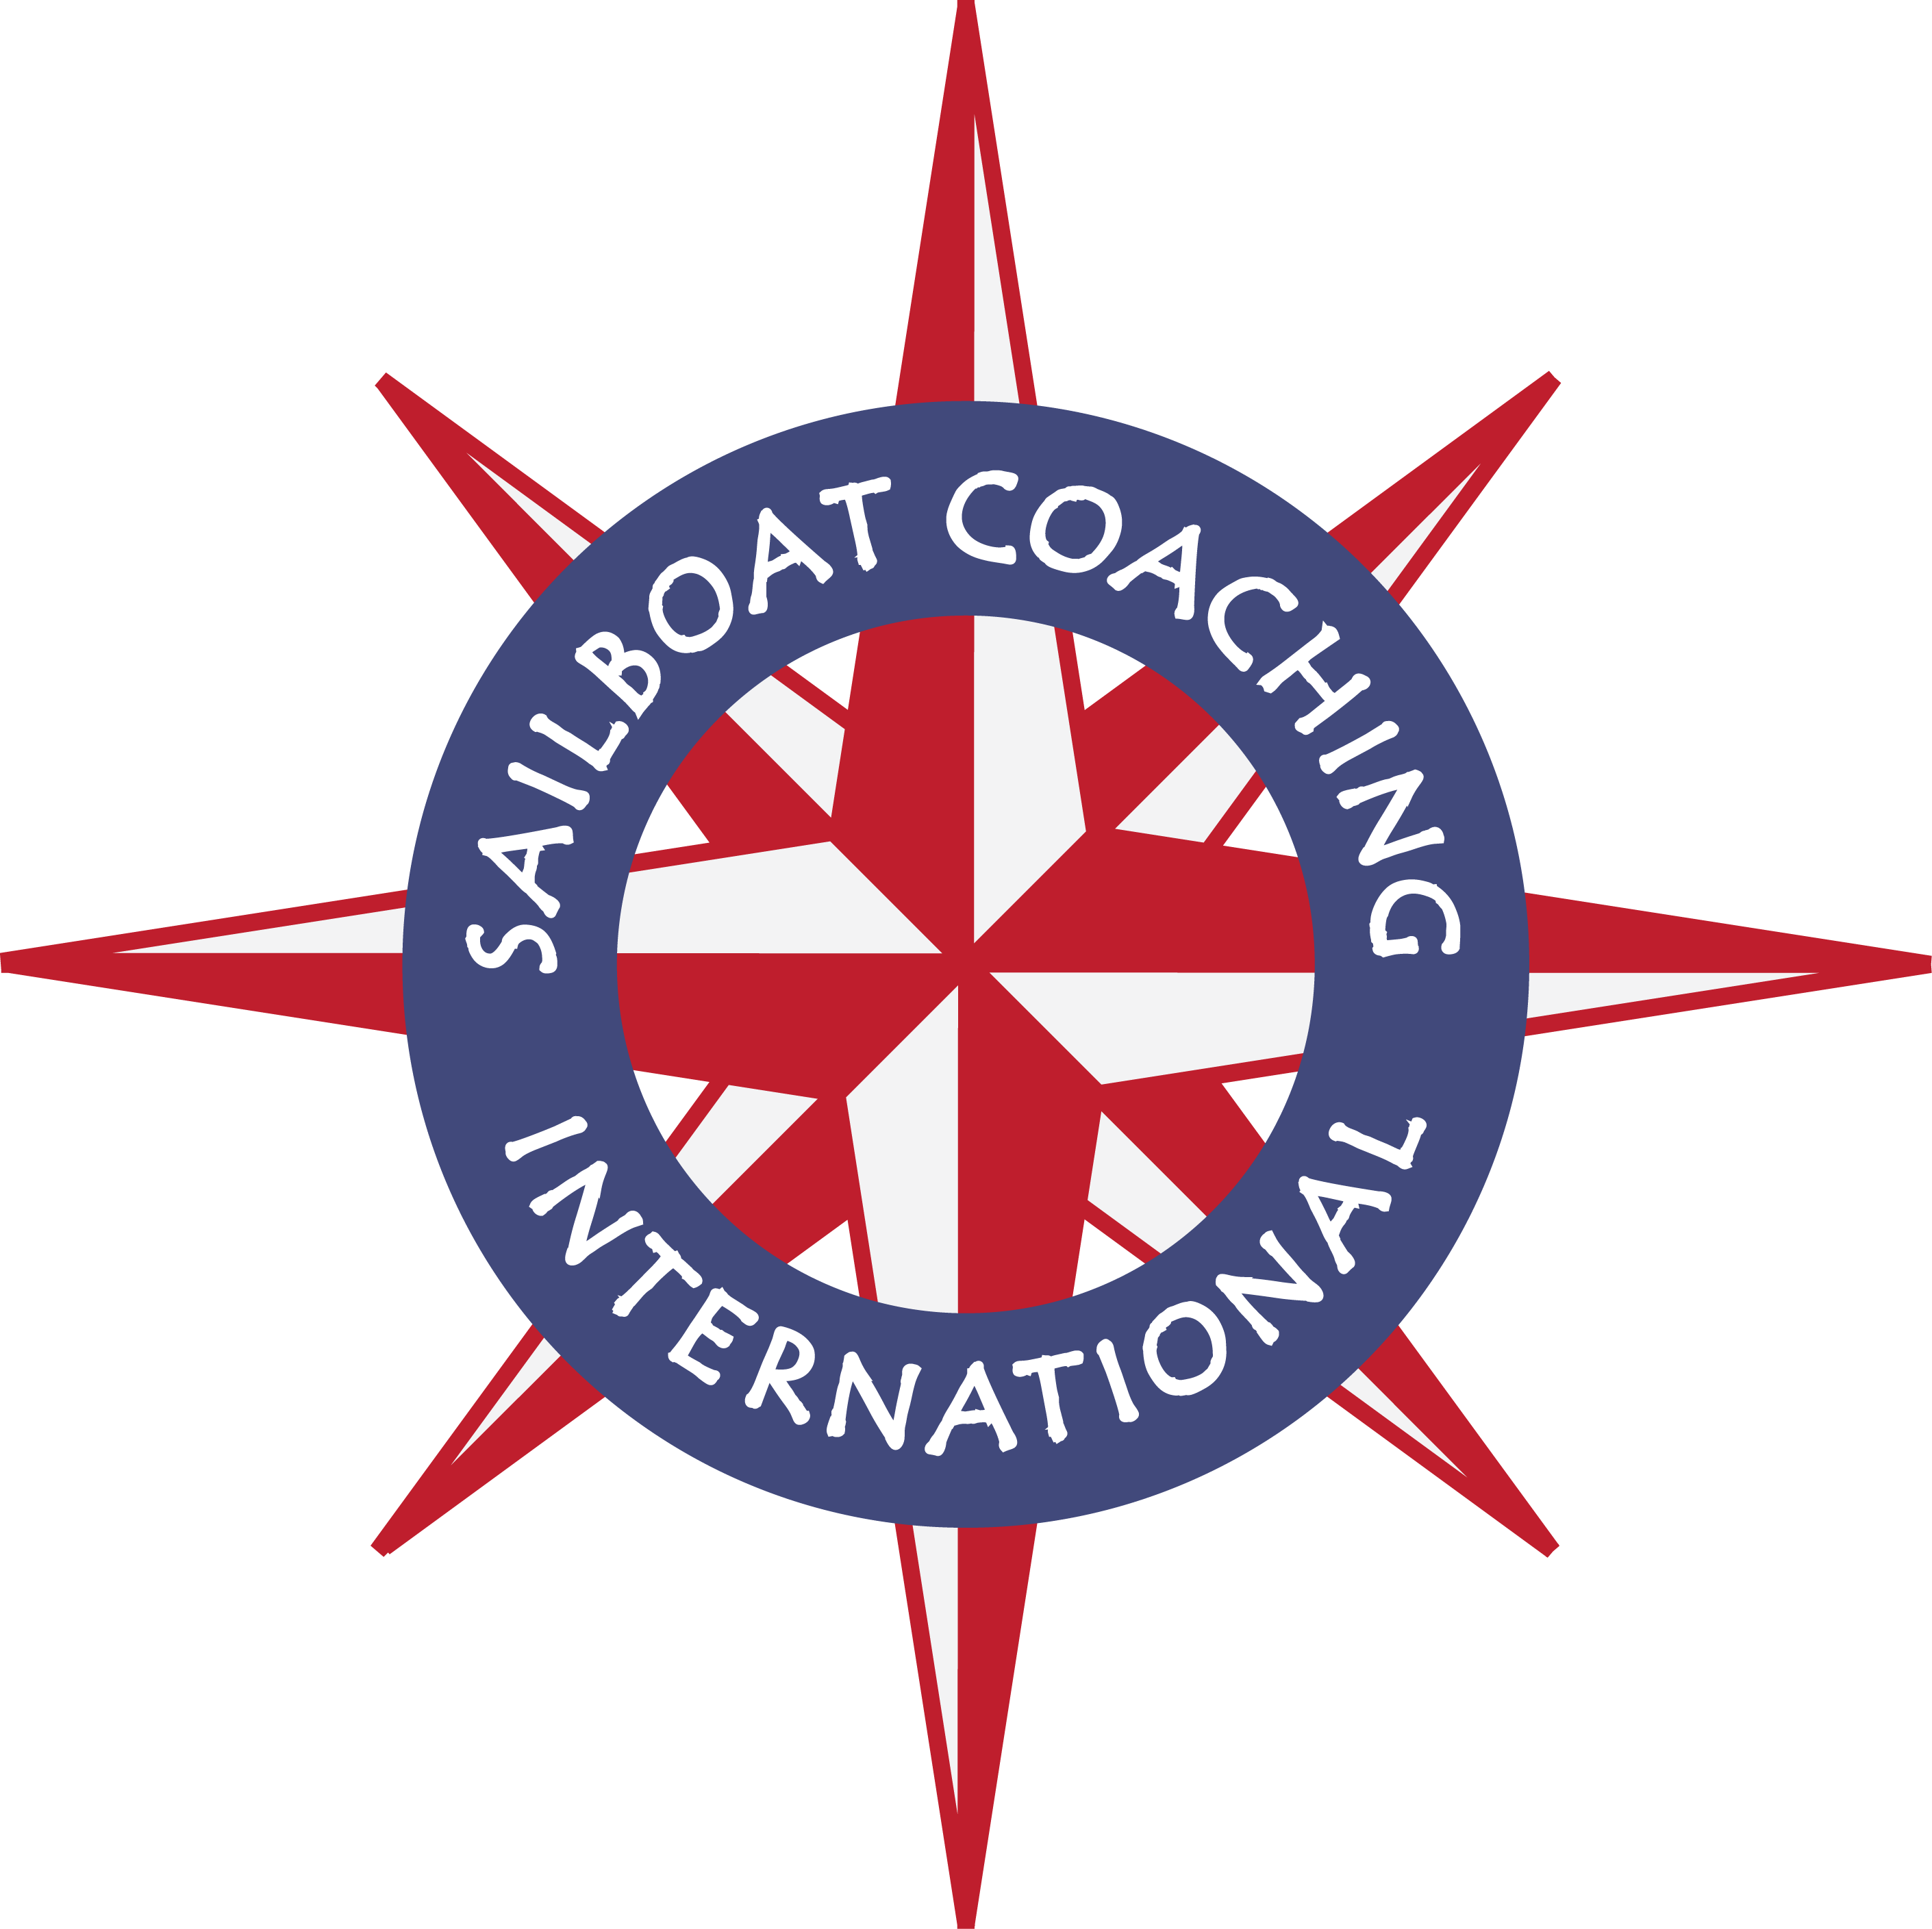 Sailboat Coaching International